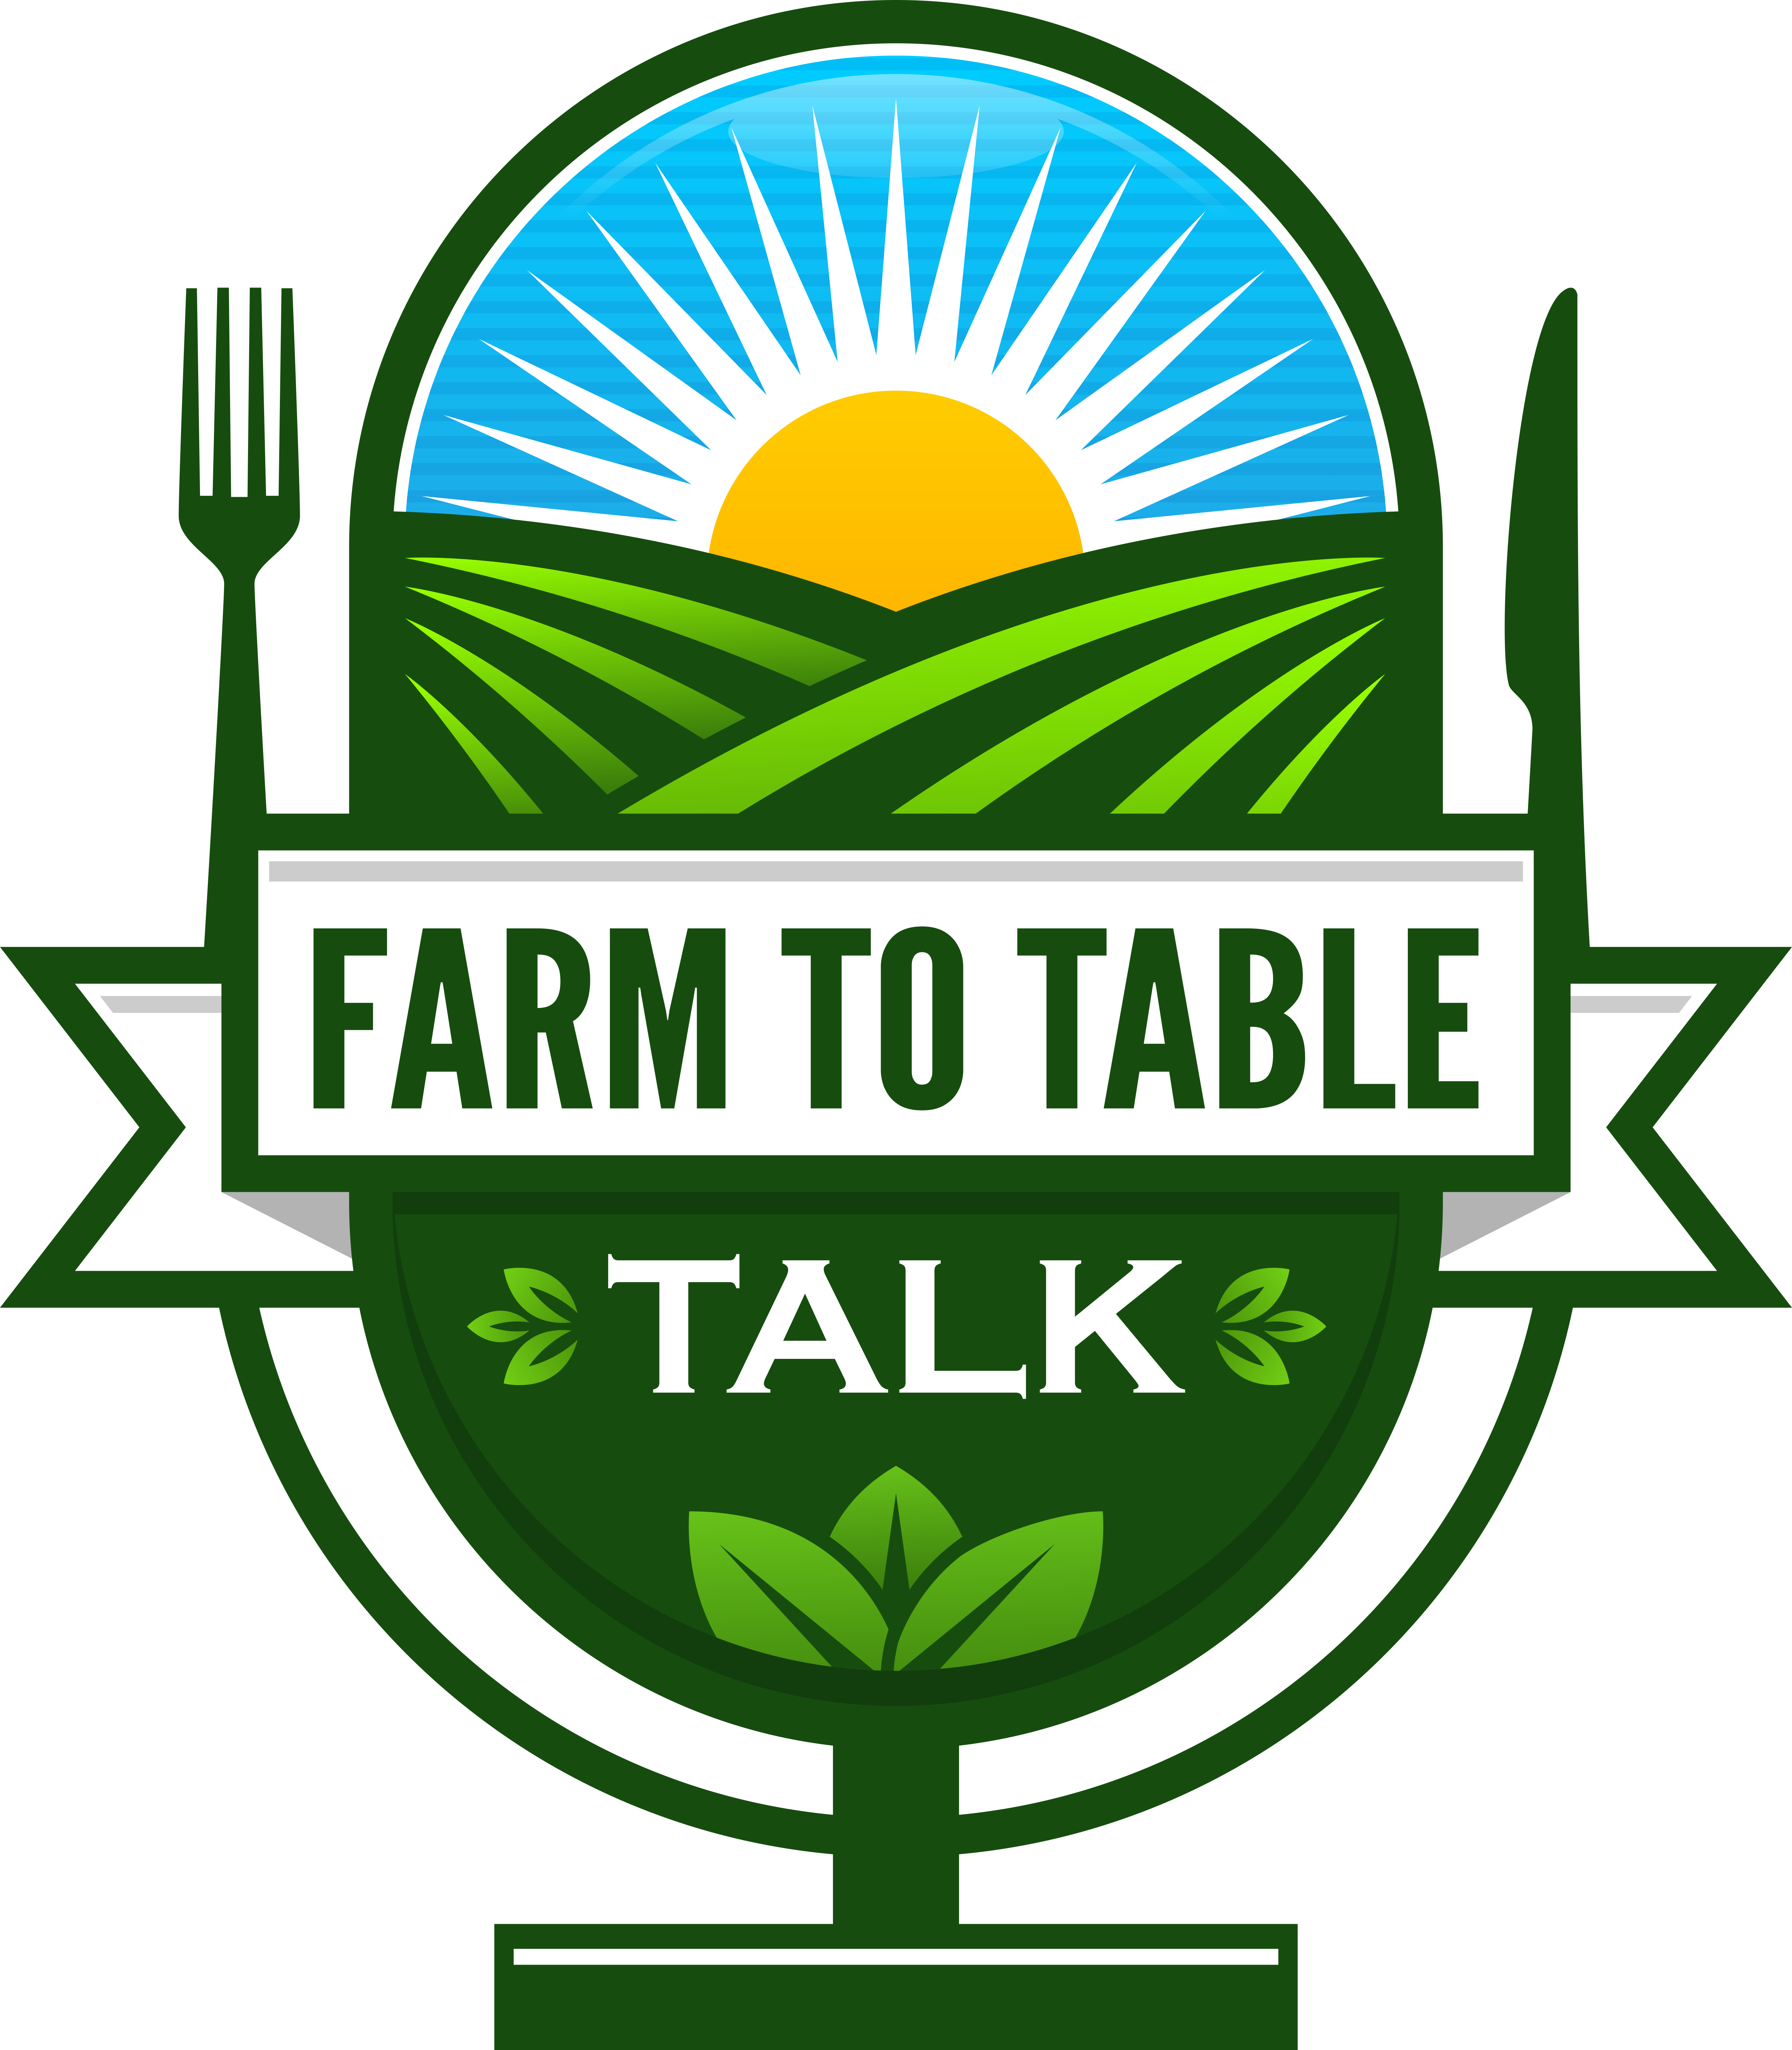 Tools To End Hunger  Katie Martin - Farm To Table Talk